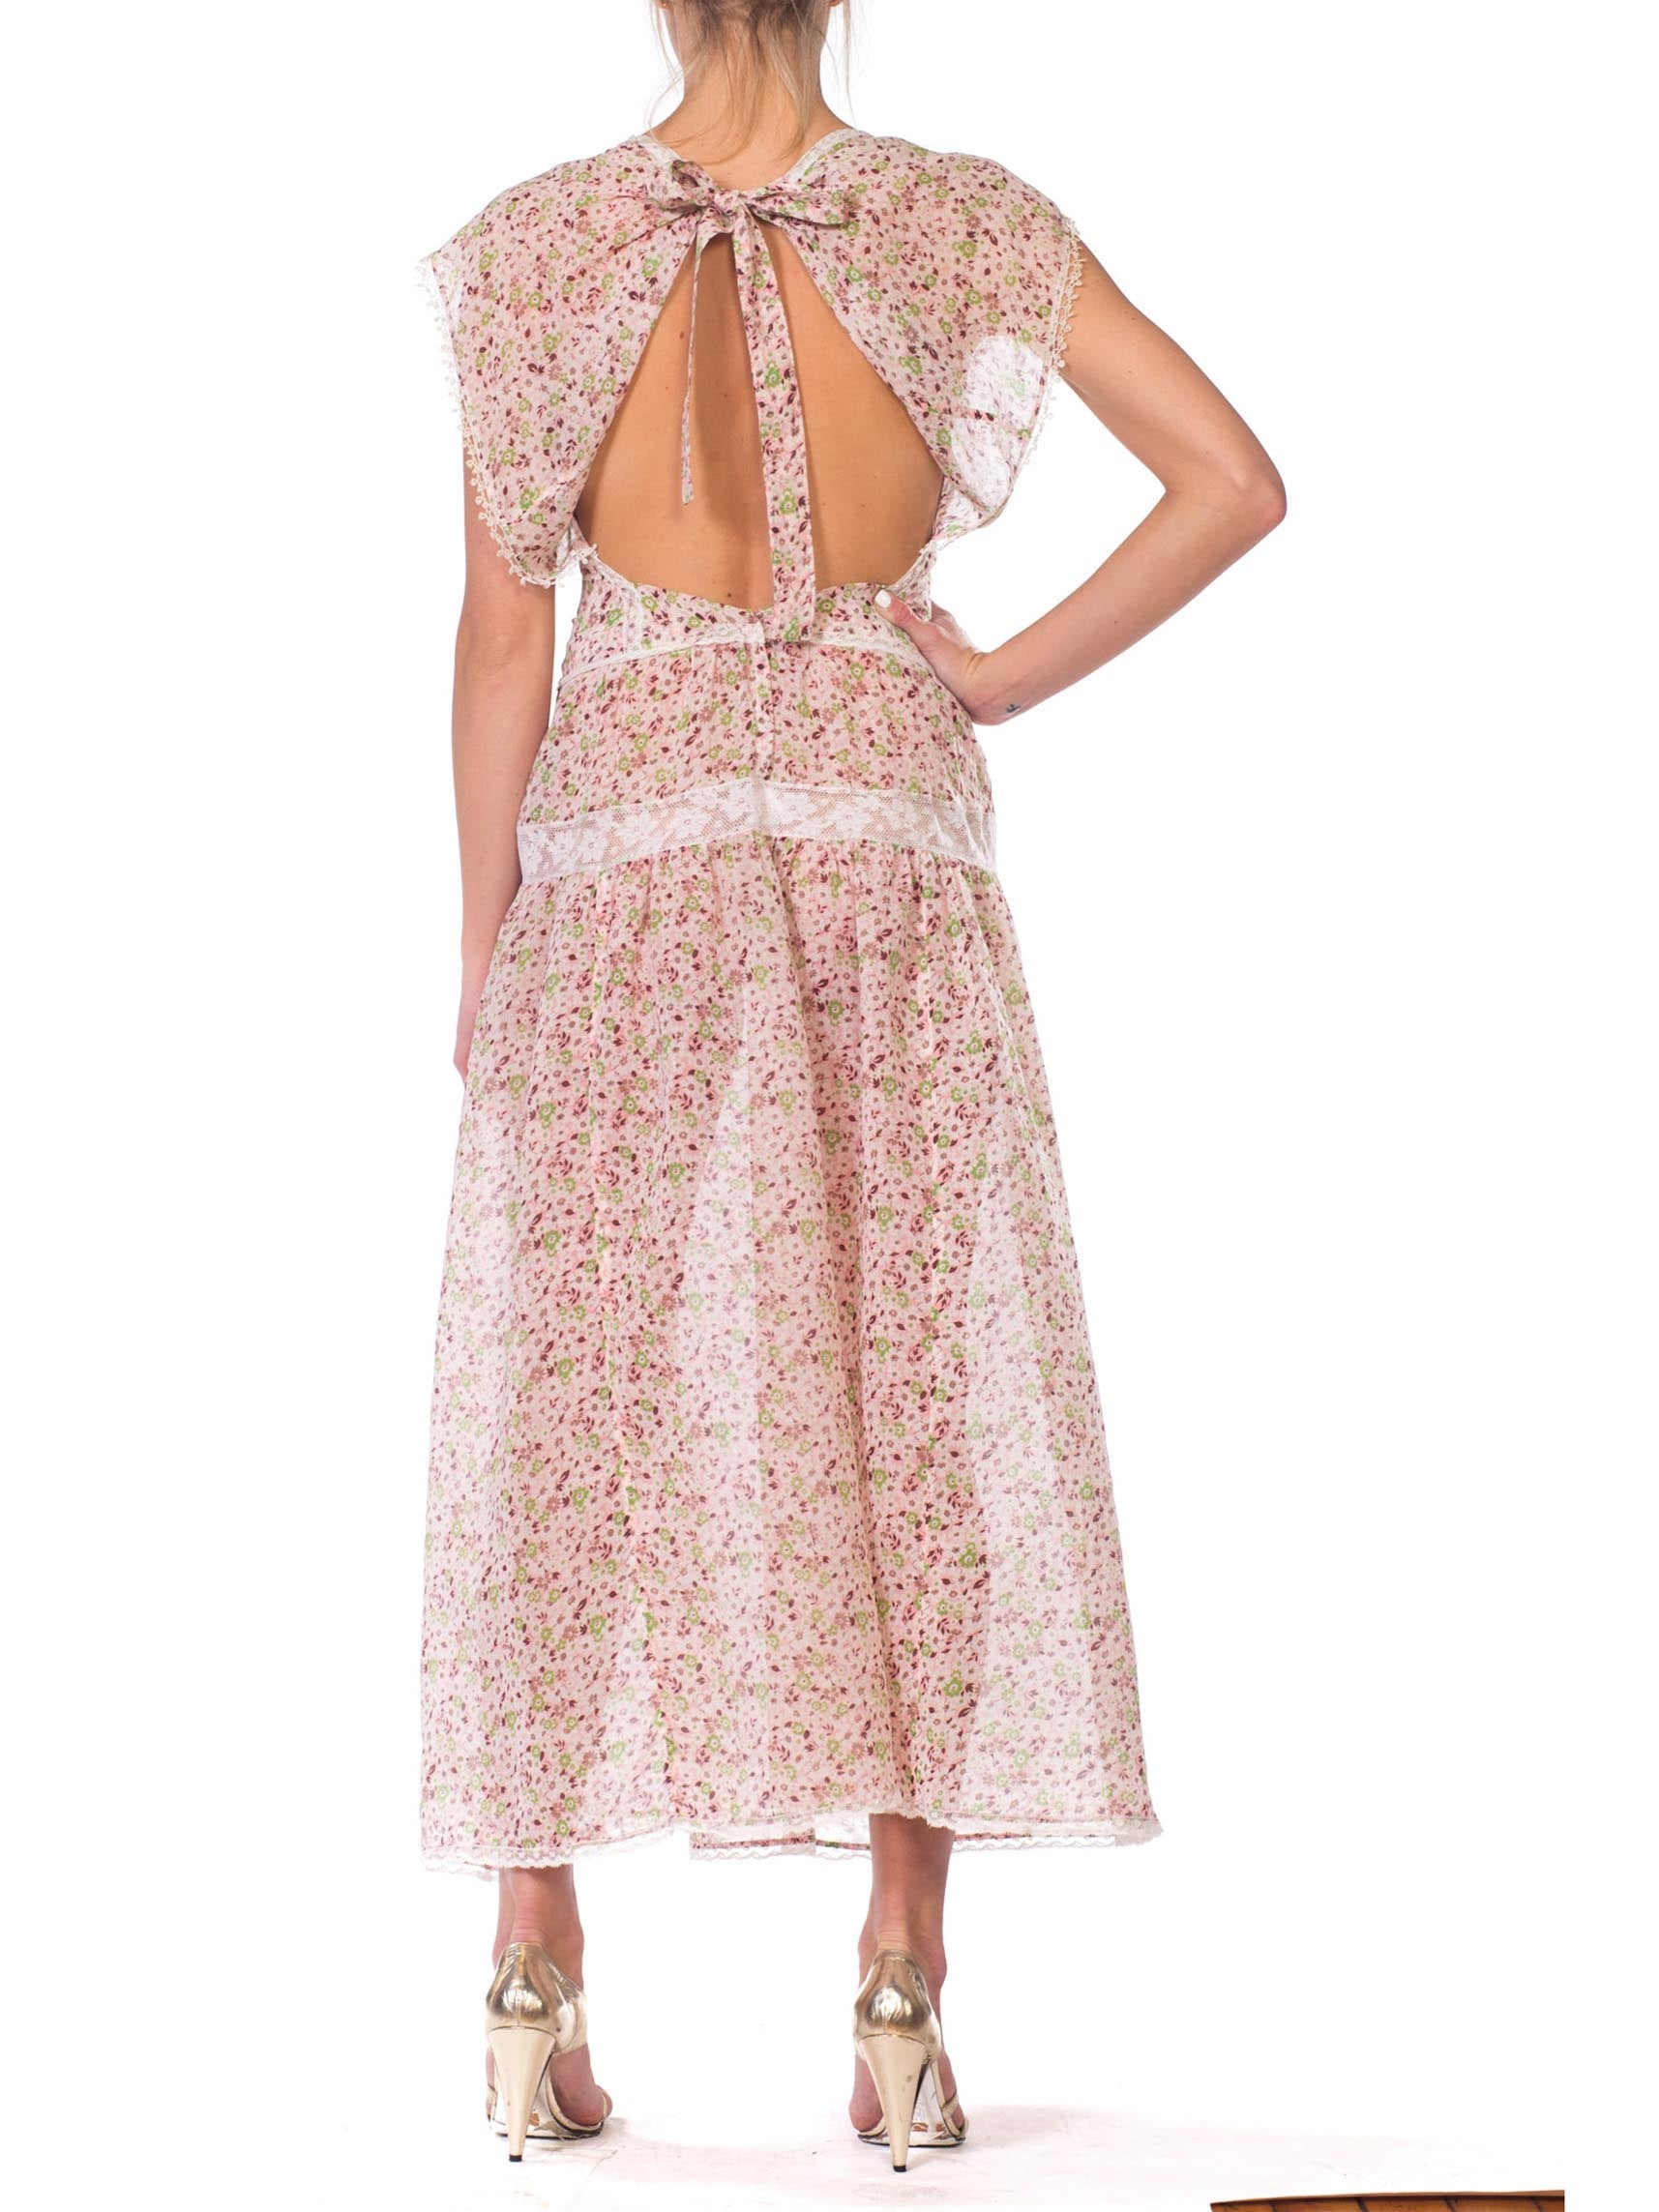 1930S Morphew Collection Backless Dress Made From Floral Cotton With Victorian Lace